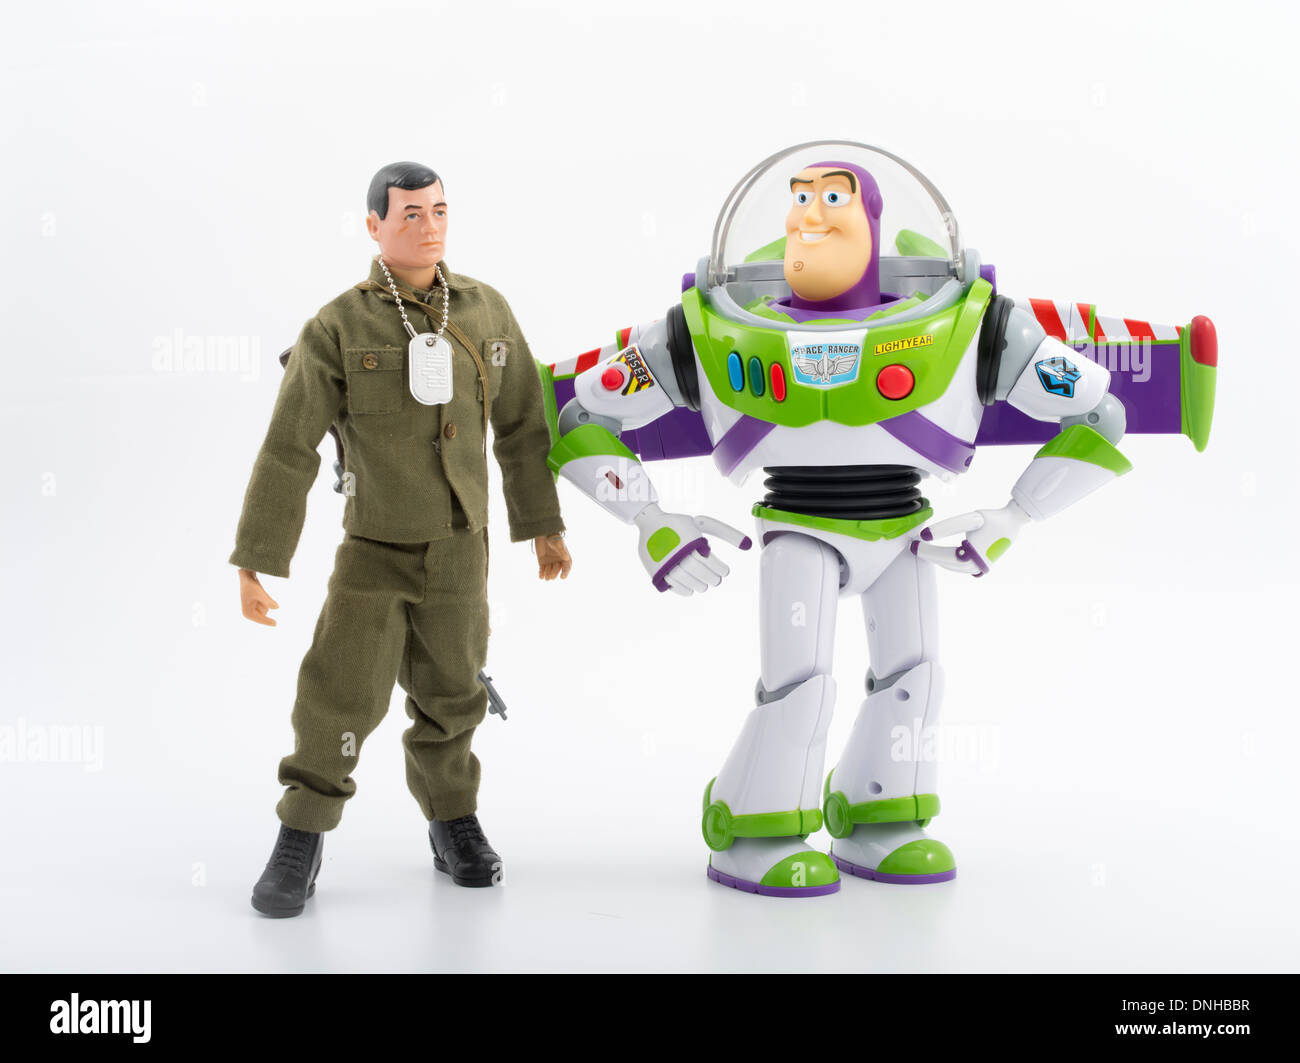 1964 G.I. Joe with 2000's Buzz Lightyear.  Iconic children's toys - Stock Image